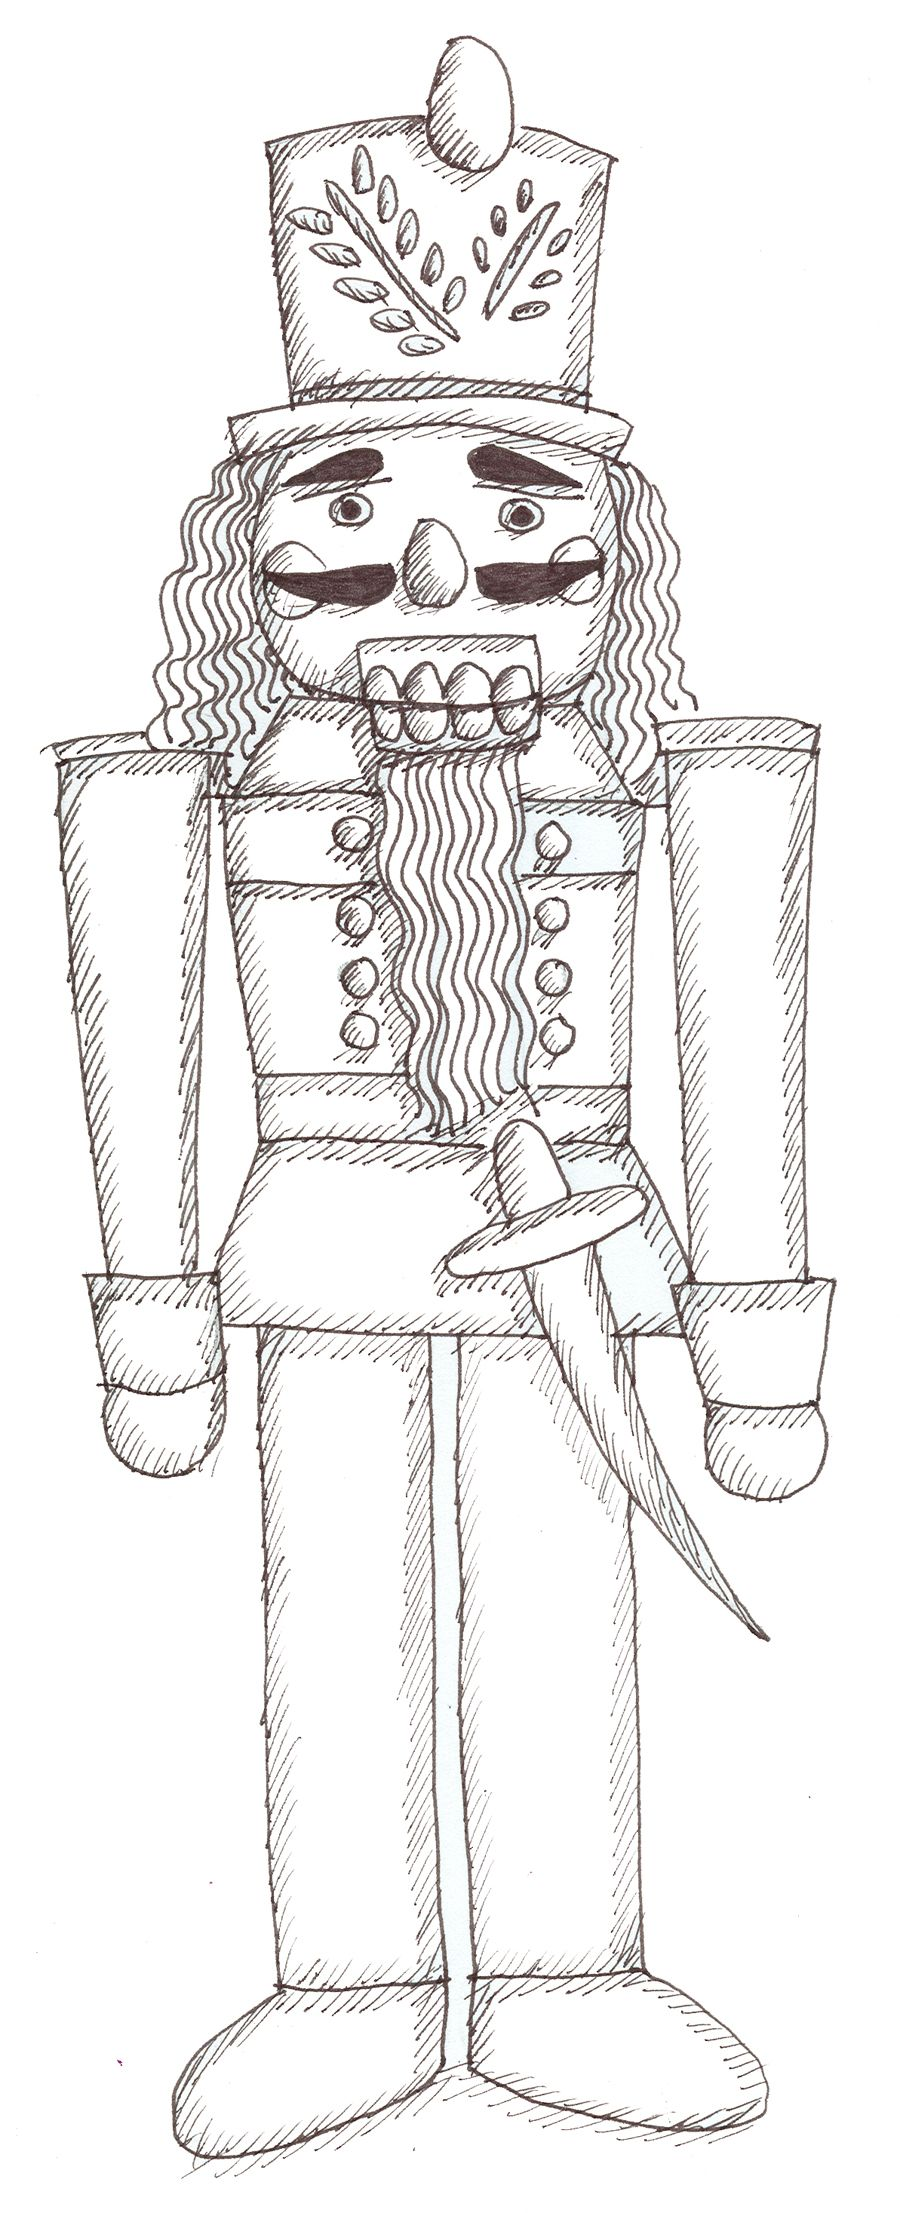 Christmas Coloring Pages Nutcracker With Sheets The Color It In And Put